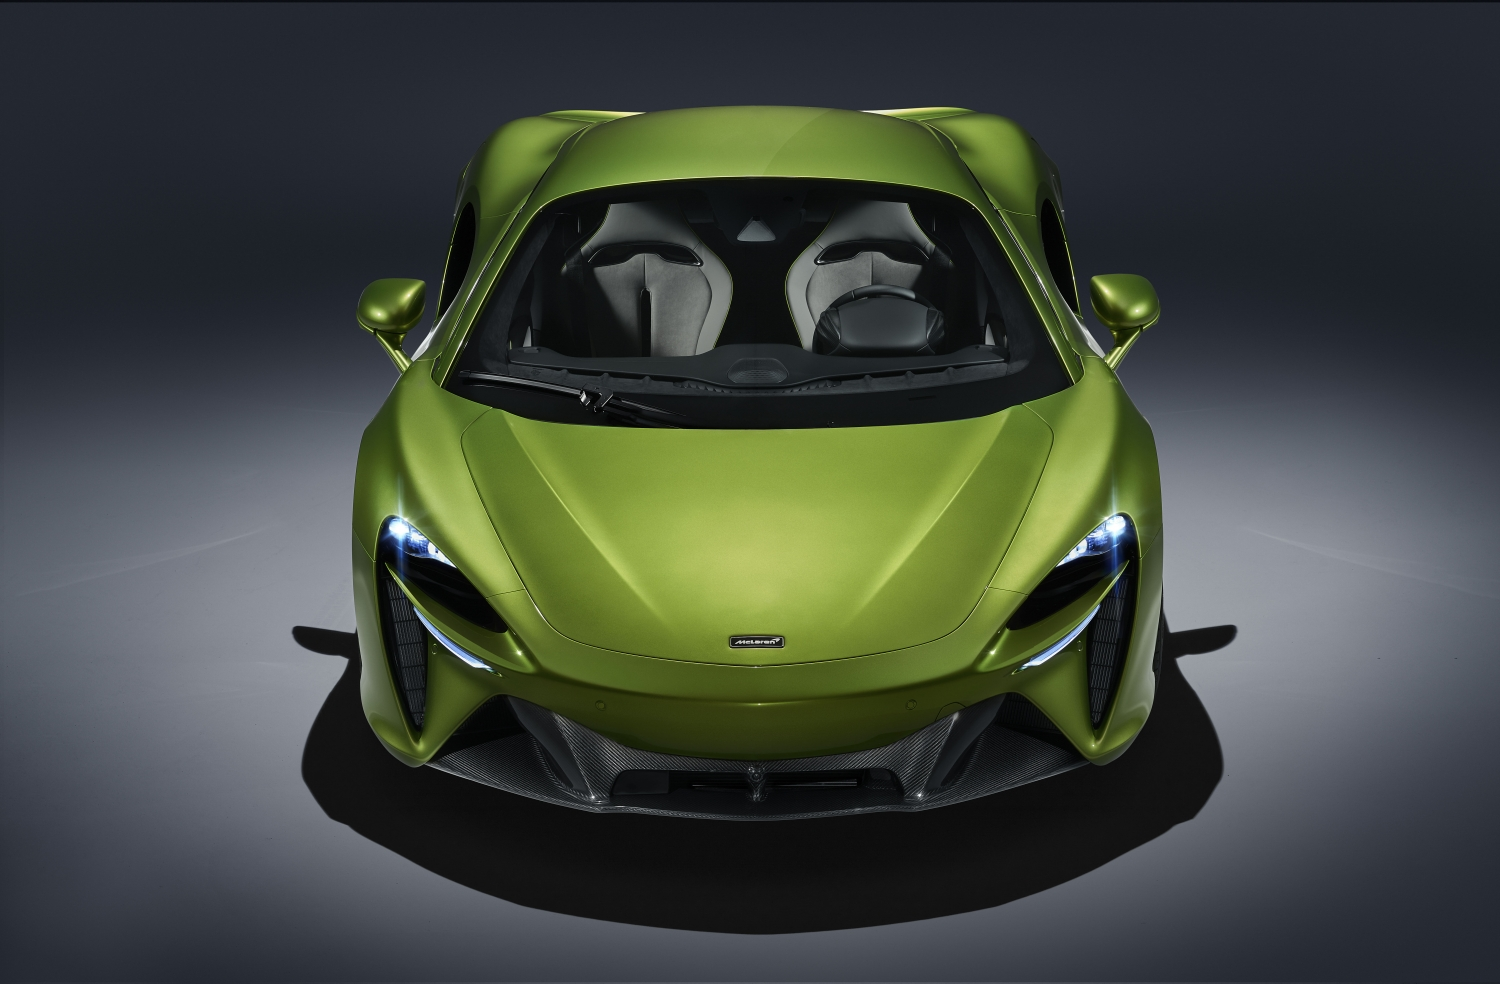 mclaren-unleashes-high-performance-hybrid-supercar